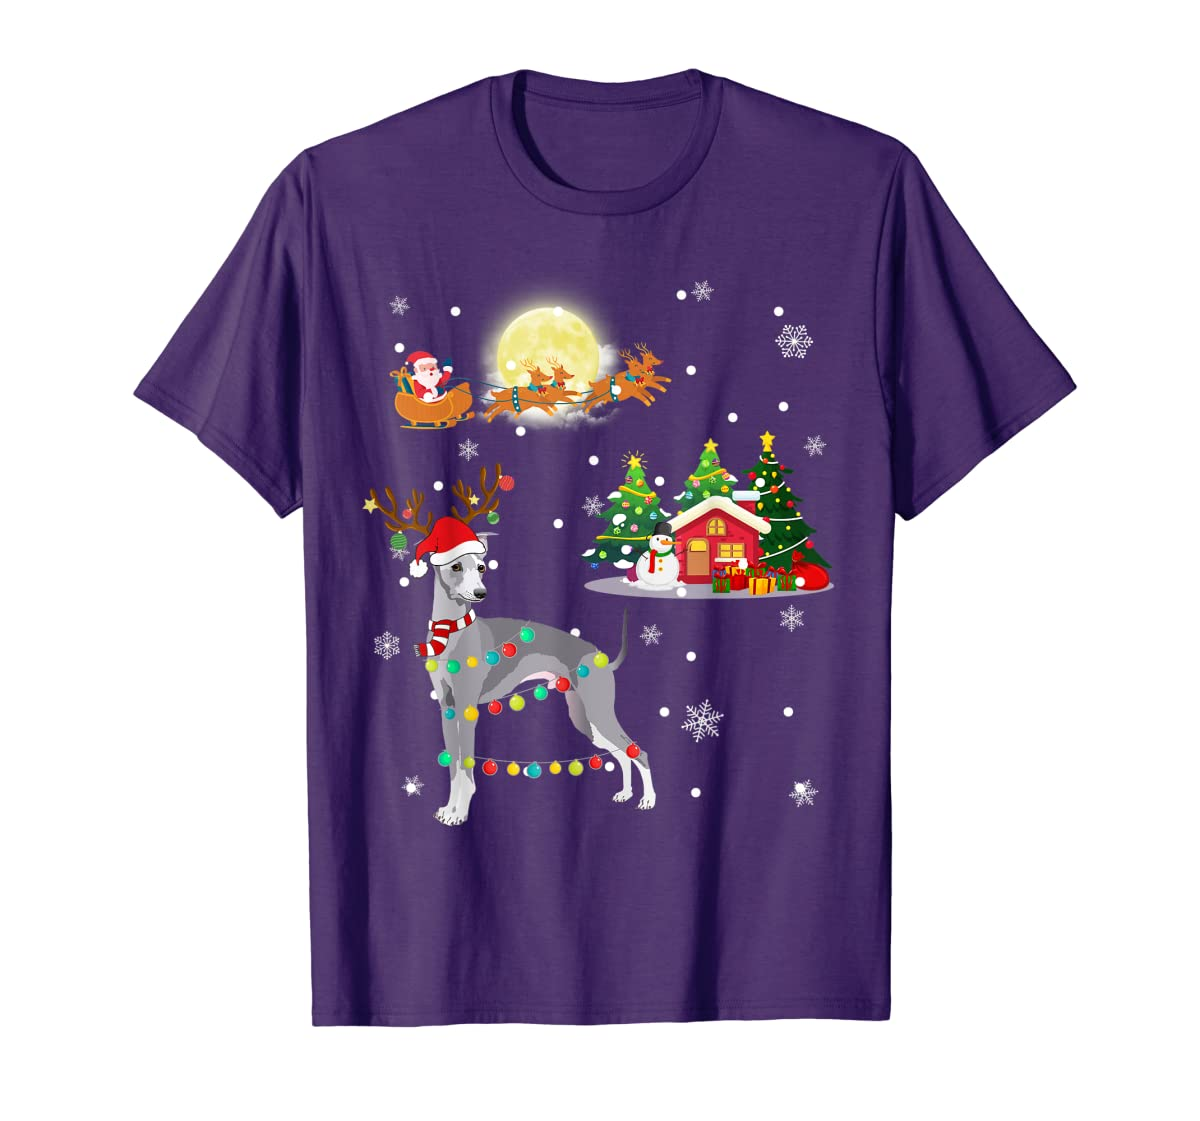 Greyhound Dog Led Light Christmas 2019 Gift T-Shirt-Men's T-Shirt-Purple